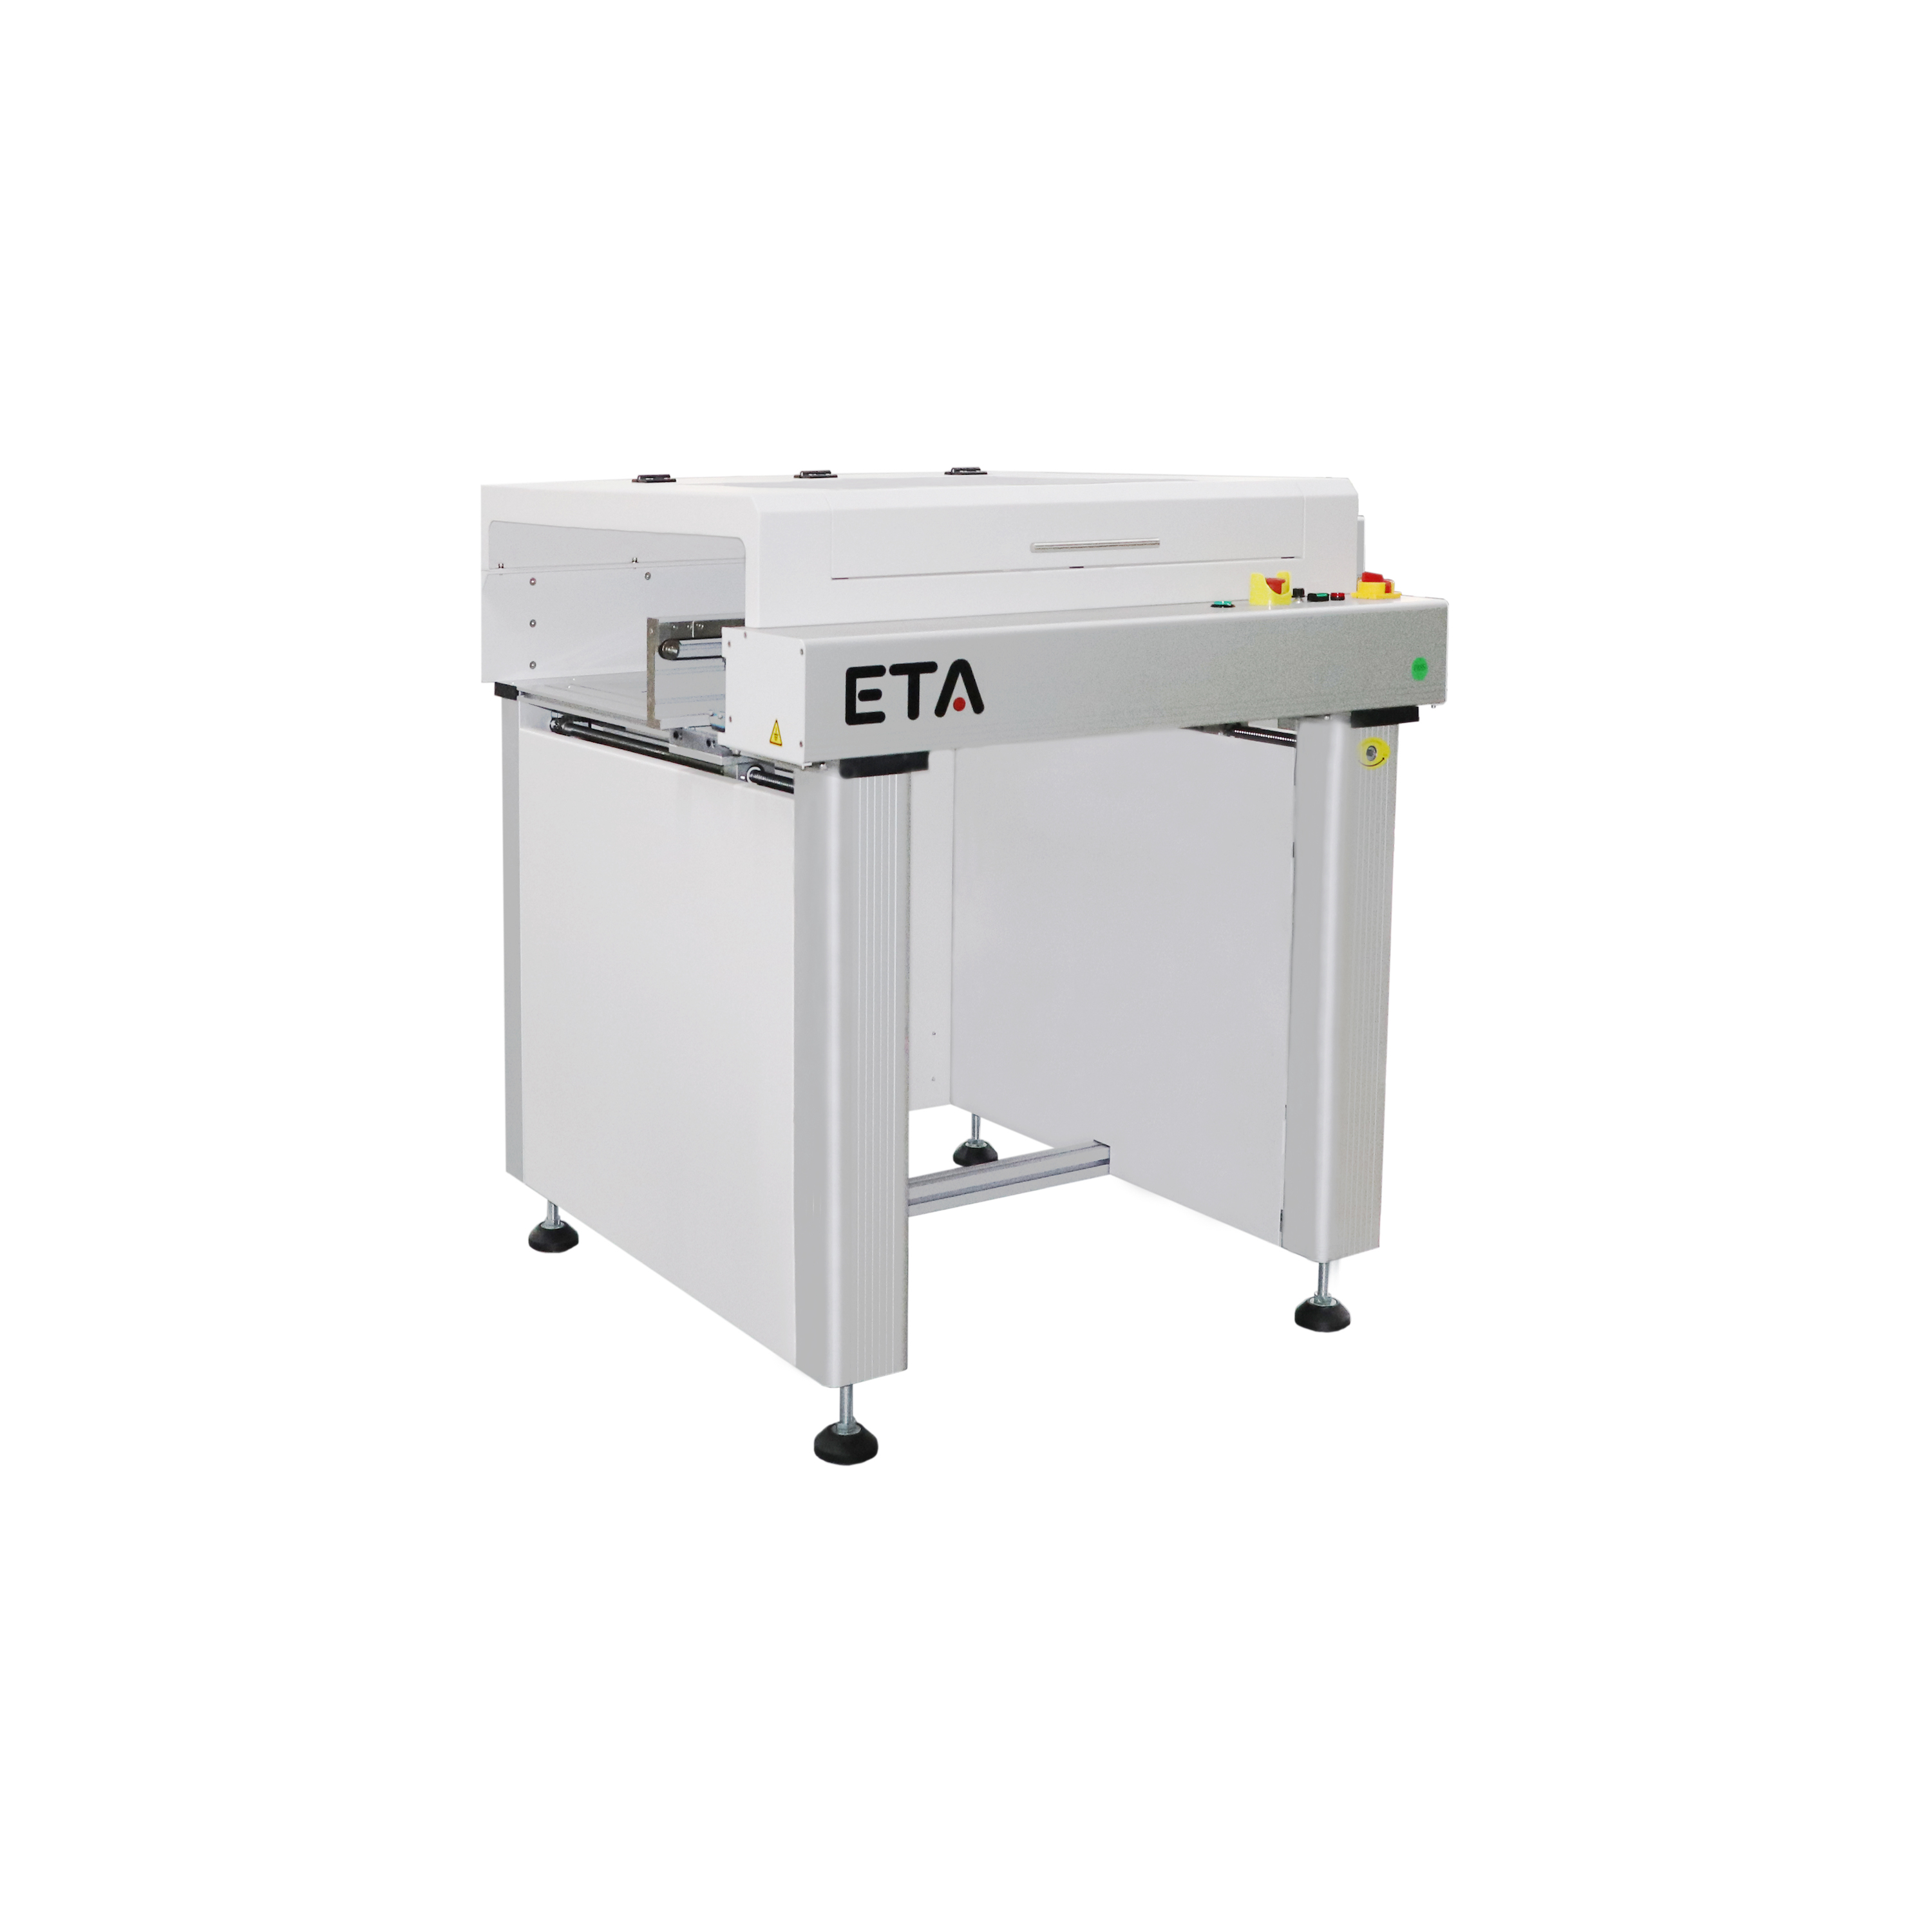 High-end Automatic PCB Barcode Scanning Conveyor